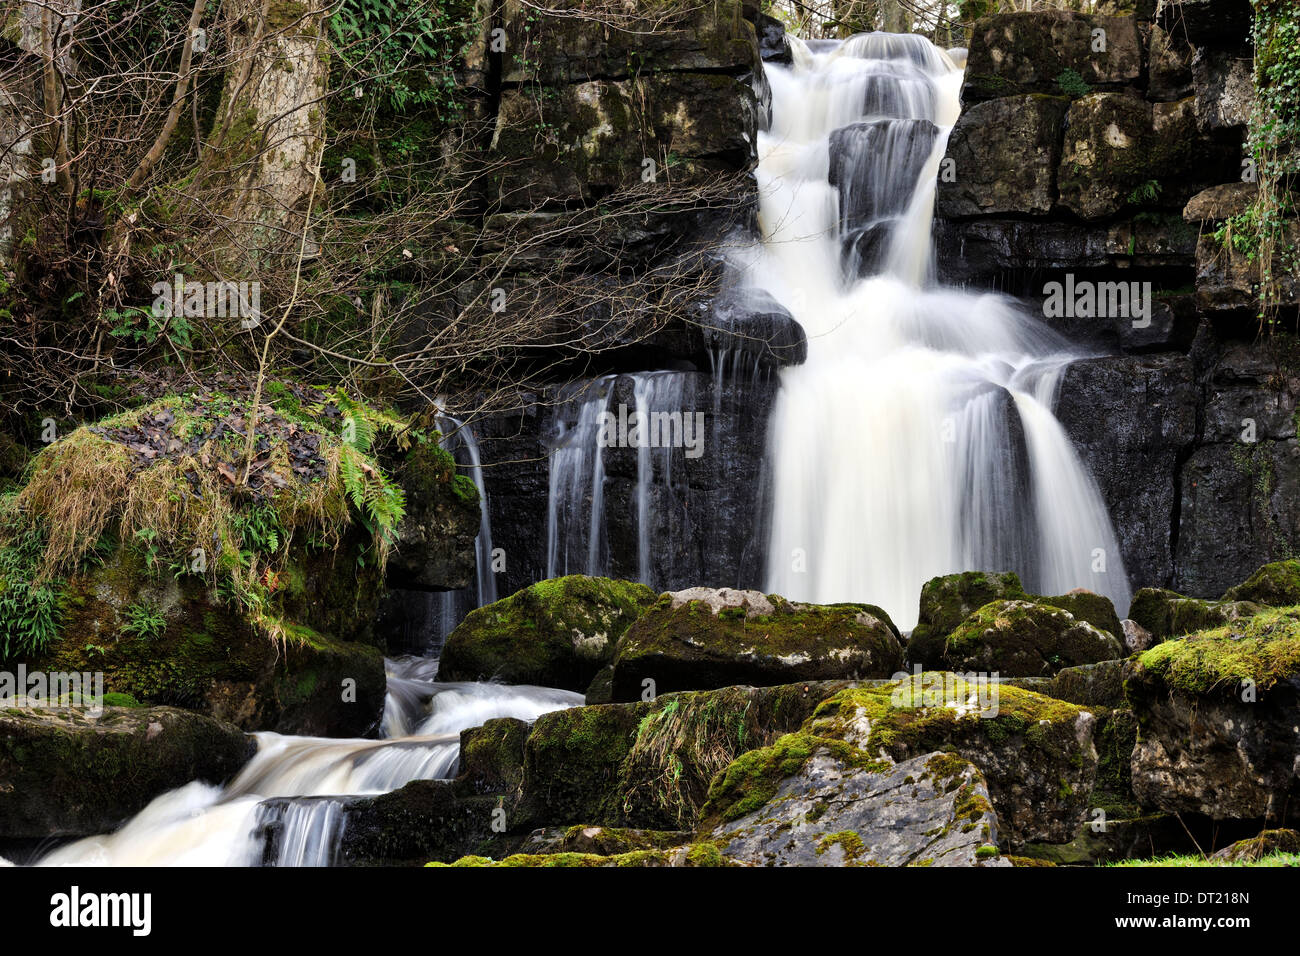 Cliff Beck, a layered waterfall near Thwaite, Yorkshire Dales National Park, England - Stock Image